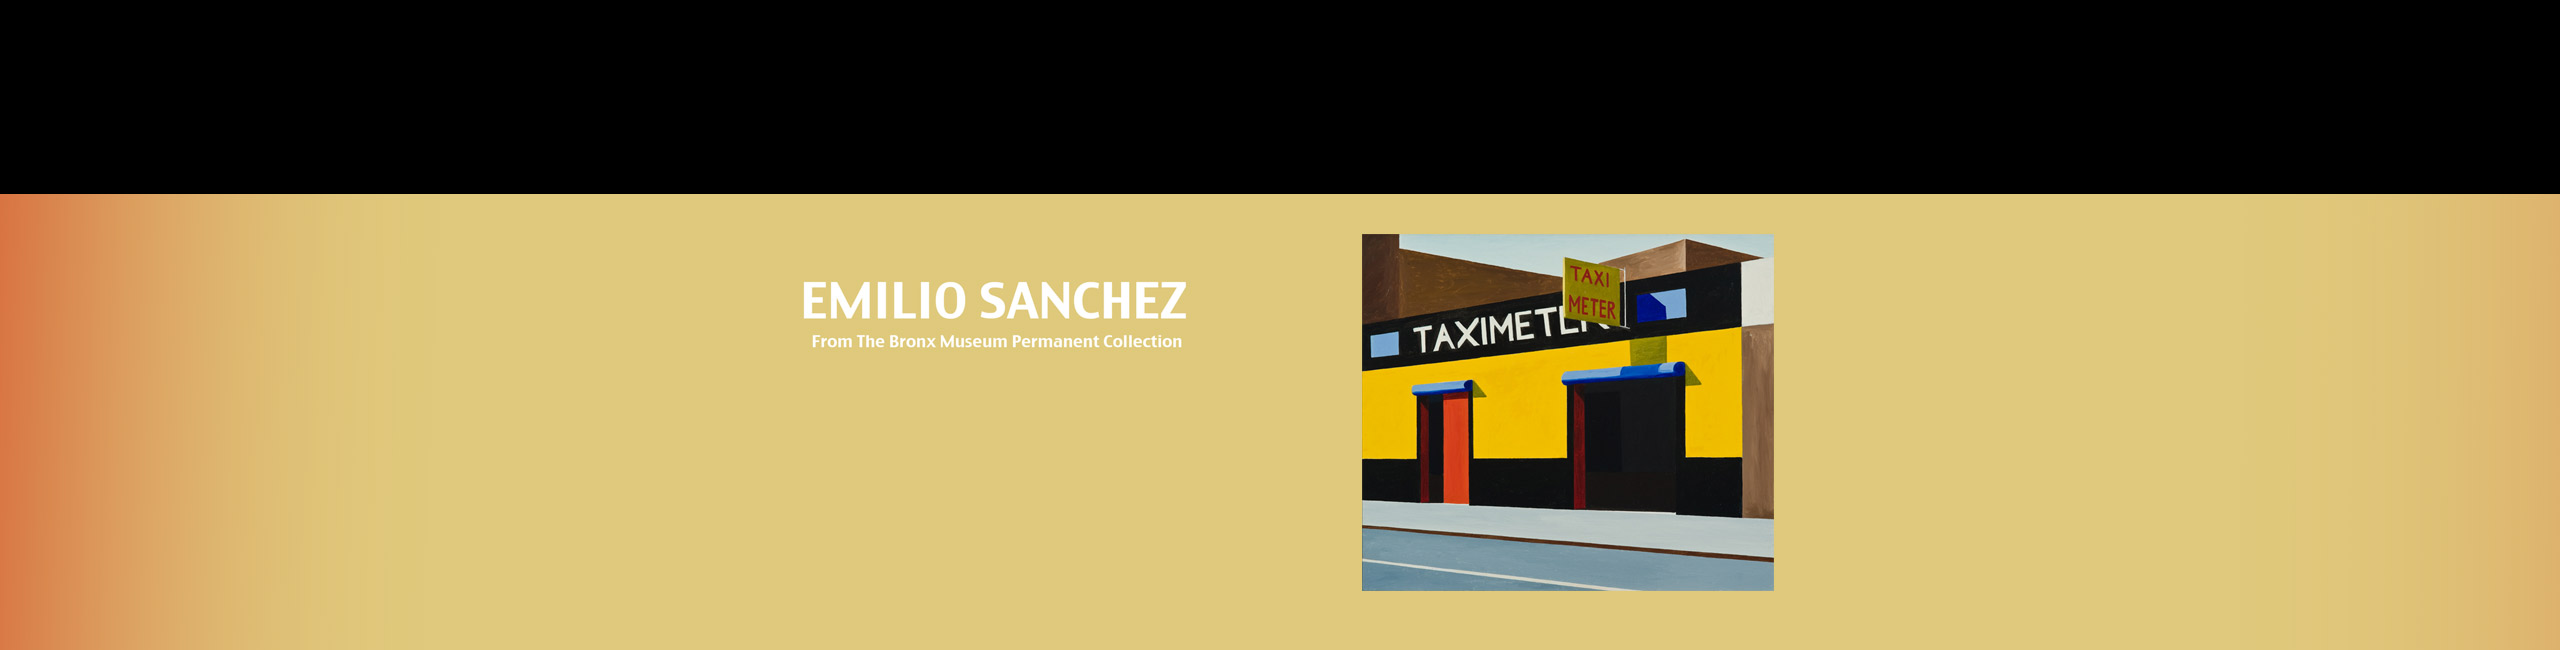 On View @ the Art Gallery: Paintings by Cuban-American Artist Emilio Sanchez from the Bronx Museum Permanent Collection Through Jan. 5